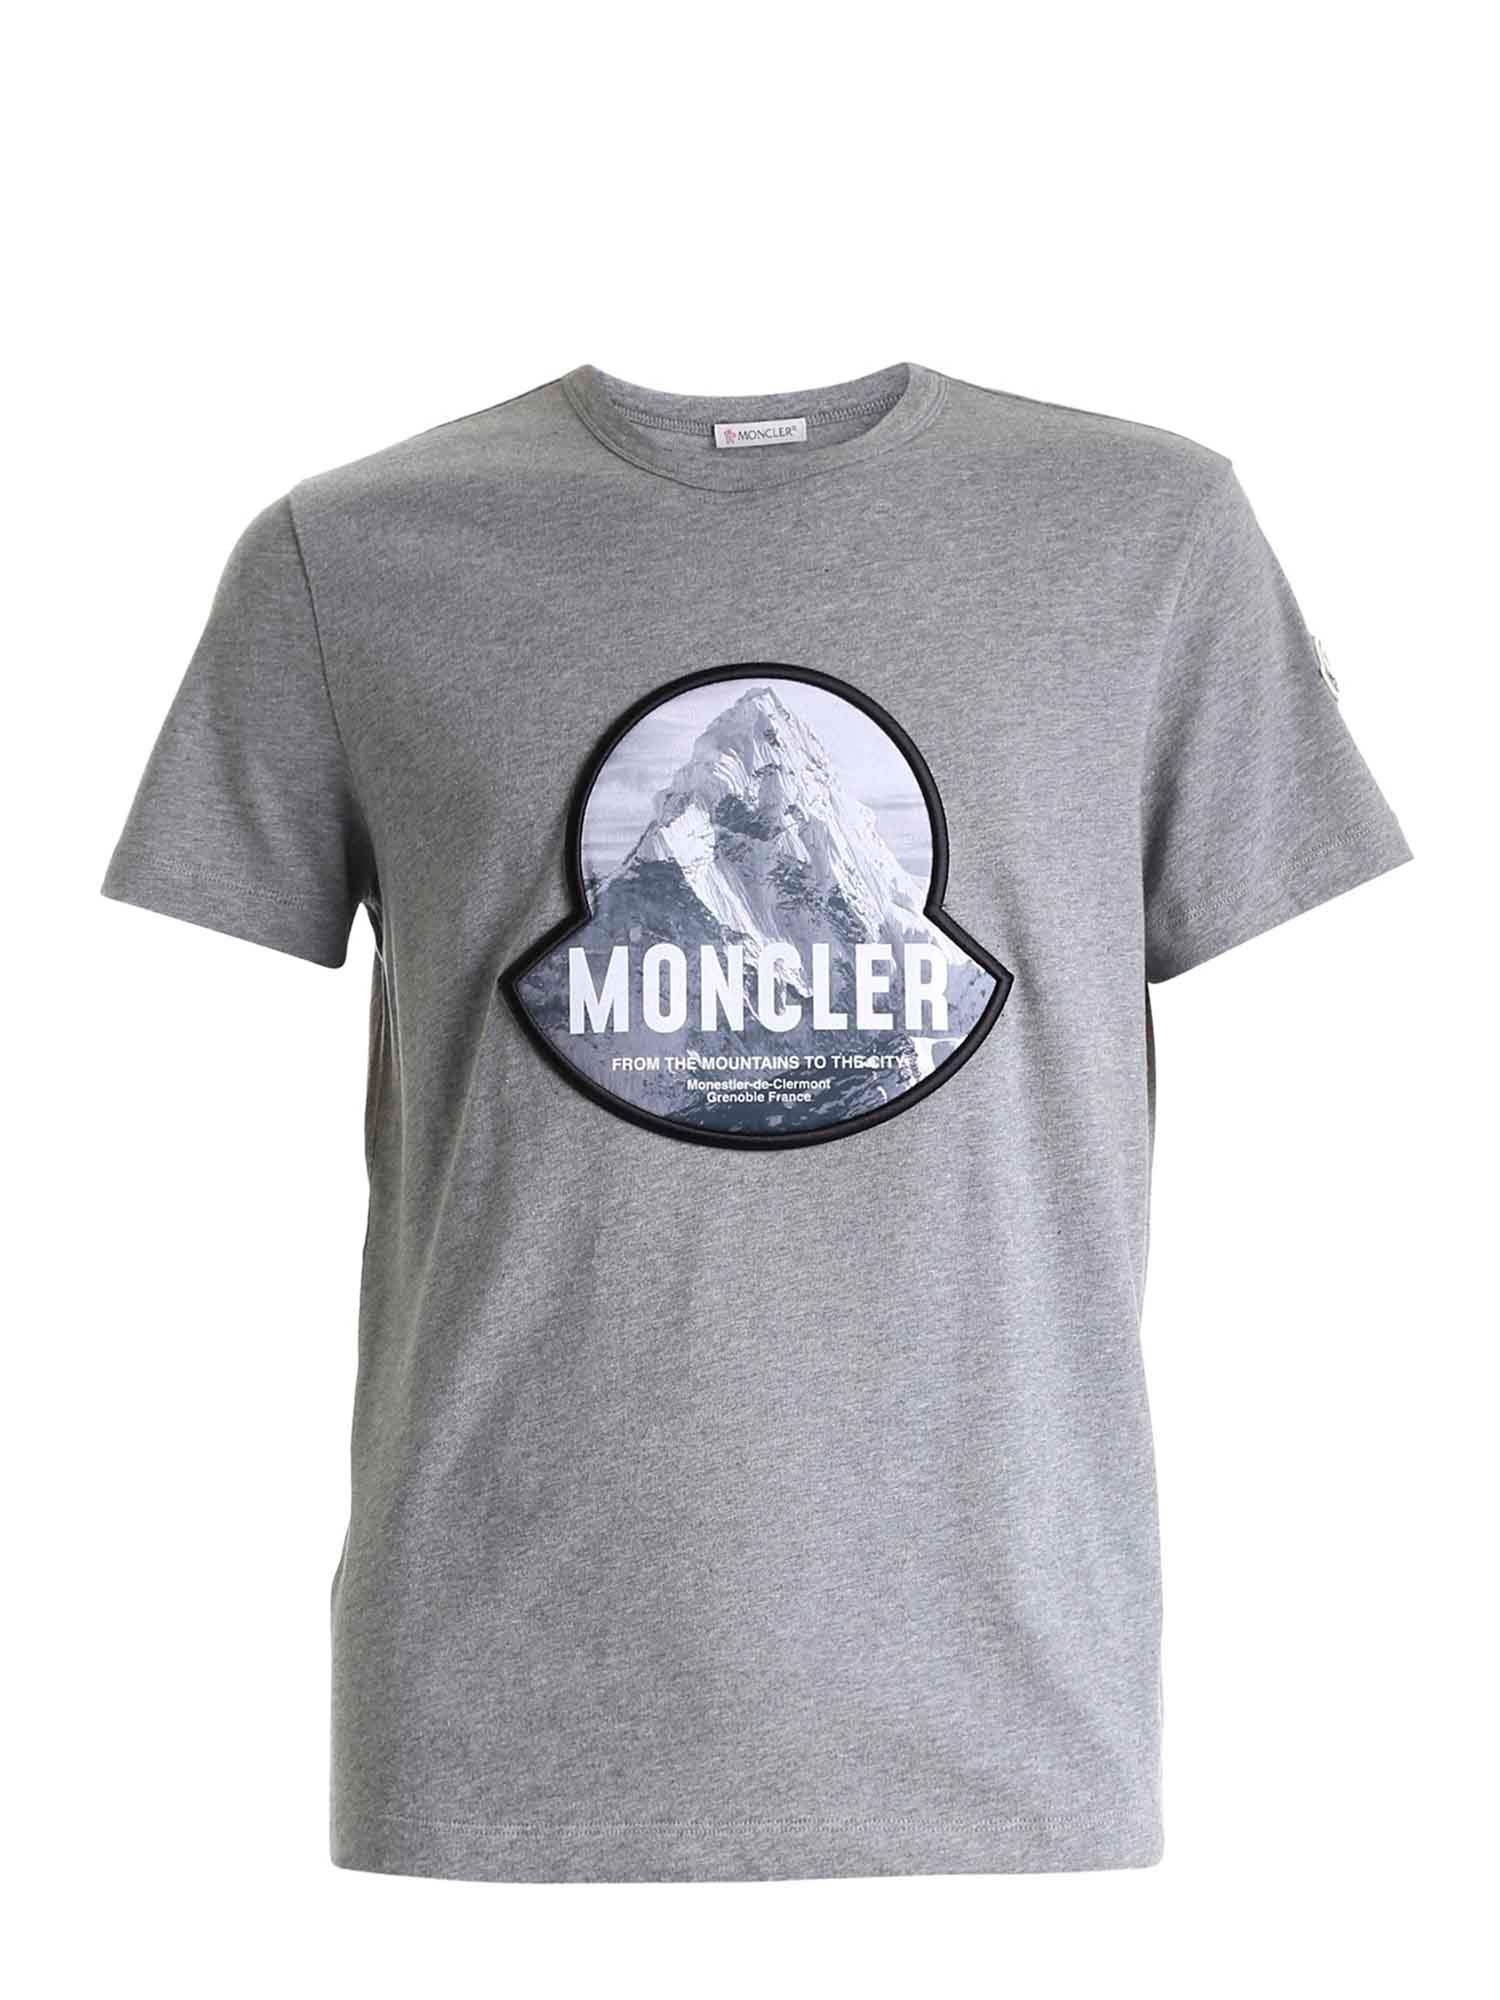 Moncler LOGO PATCH T-SHIRT IN GREY